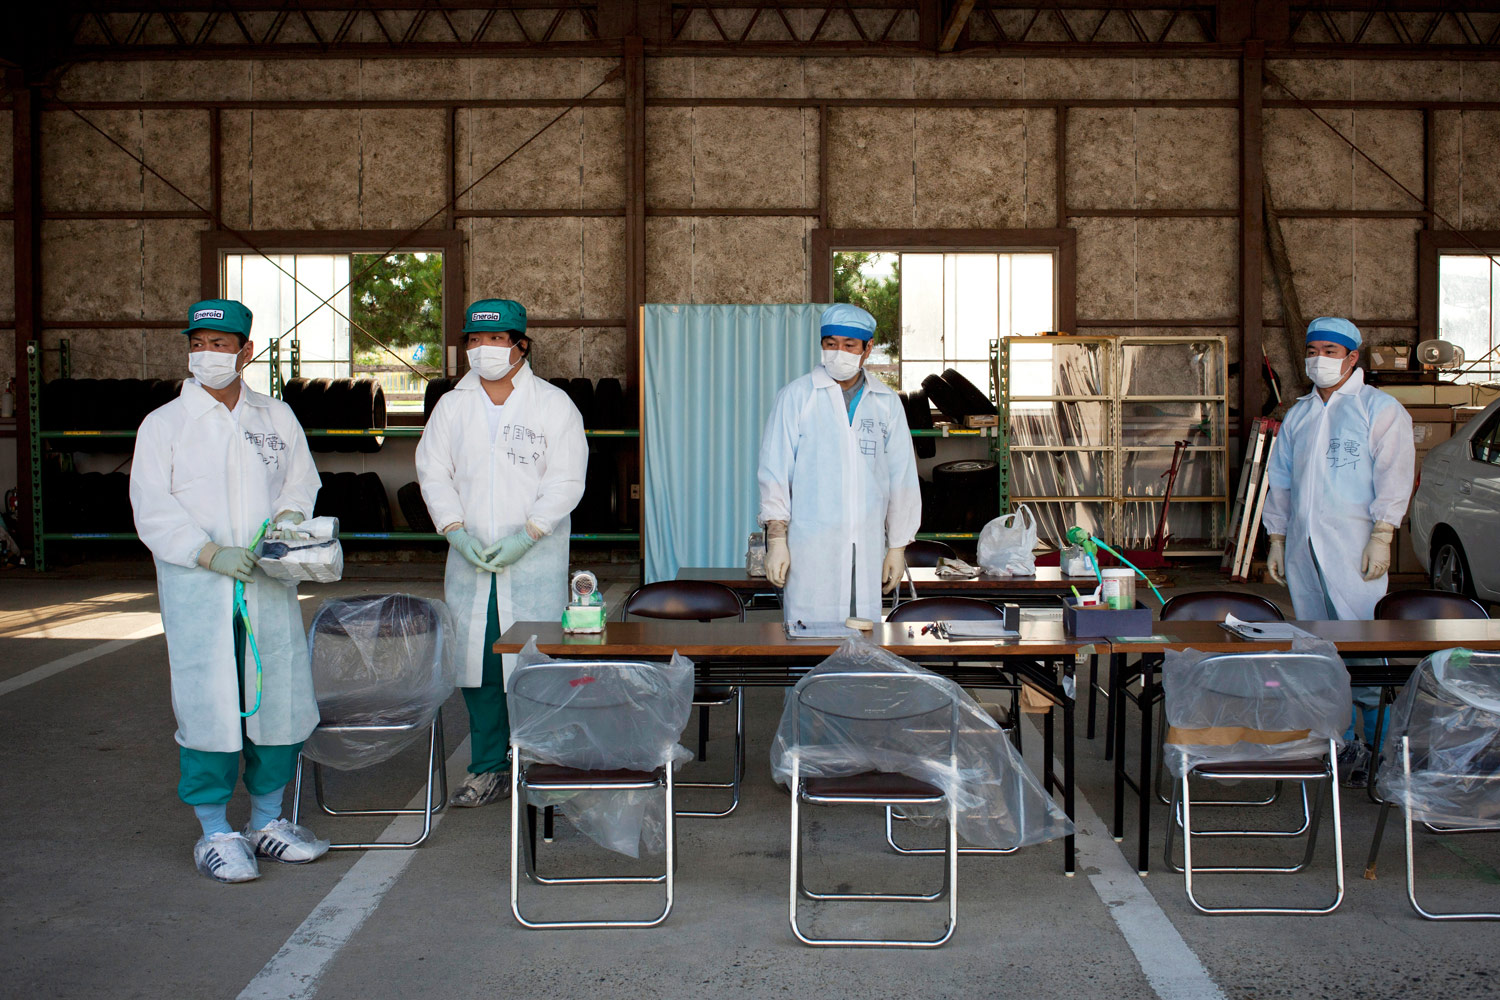 Technicians at a radiation screening center in Minamisoma, August 13, 2011. Most of the people screened had come back to the exclusion zone to retrieve their belongings left behind after evacuating in March.